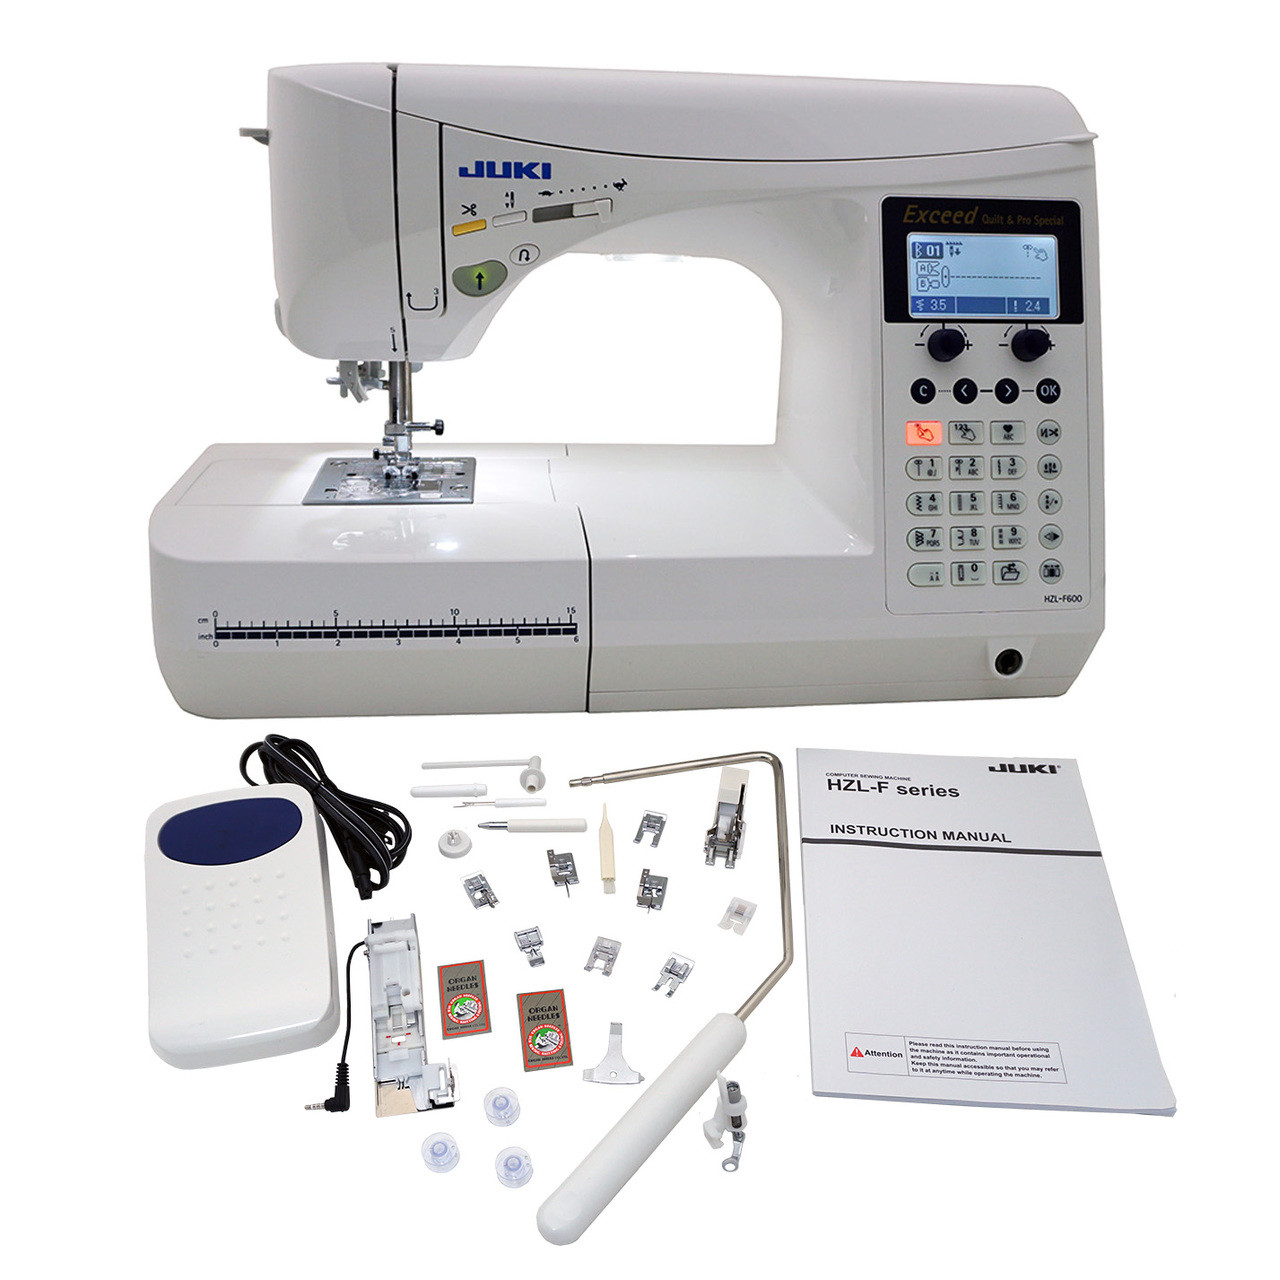 ... Juki Exceed HZL F600 Quilt Pro Special Computerized Sewing Machine